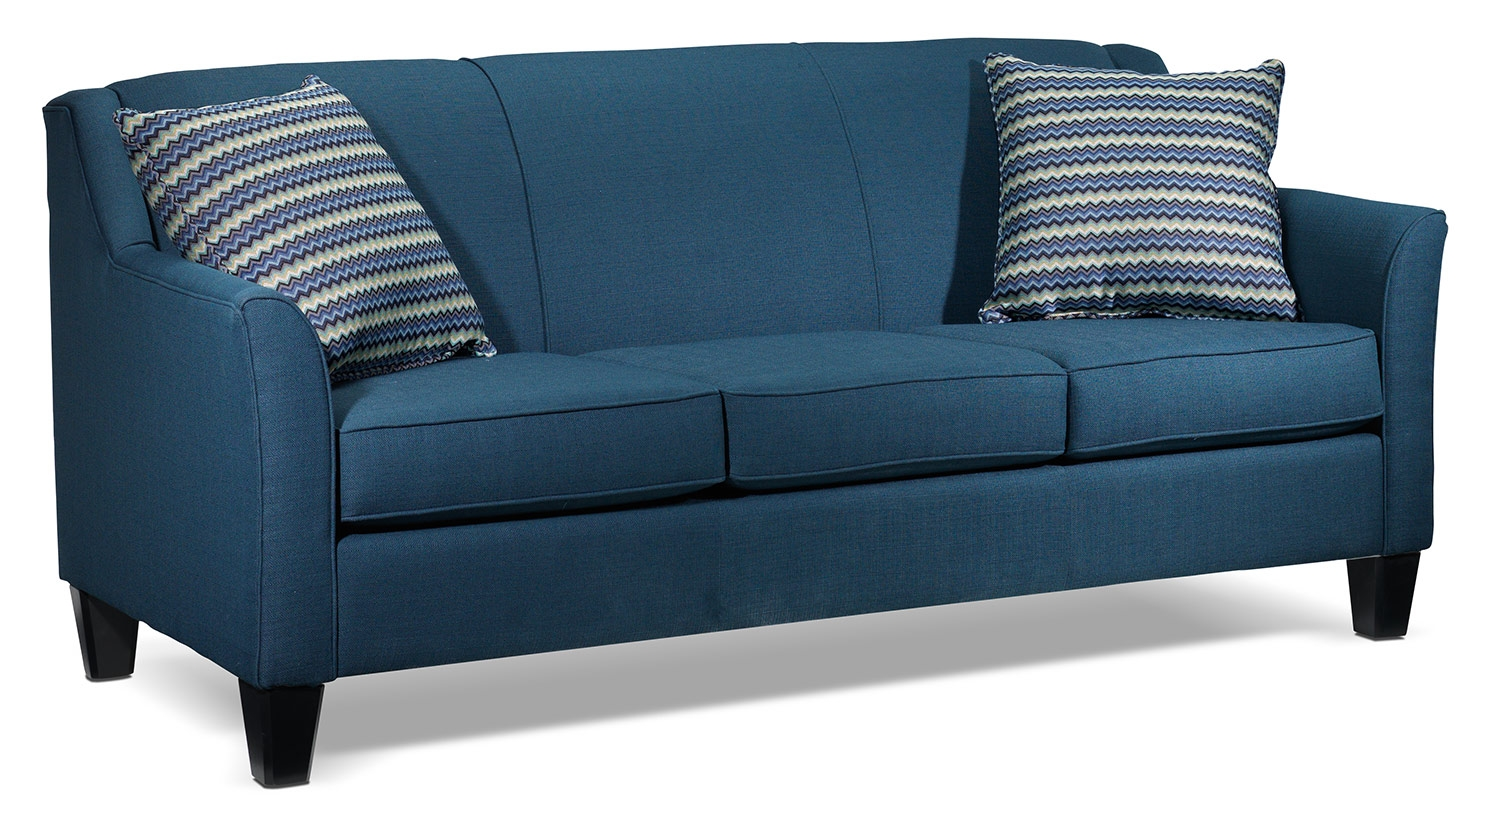 Leon S Furniture Sectional Sofa Wallpaperall